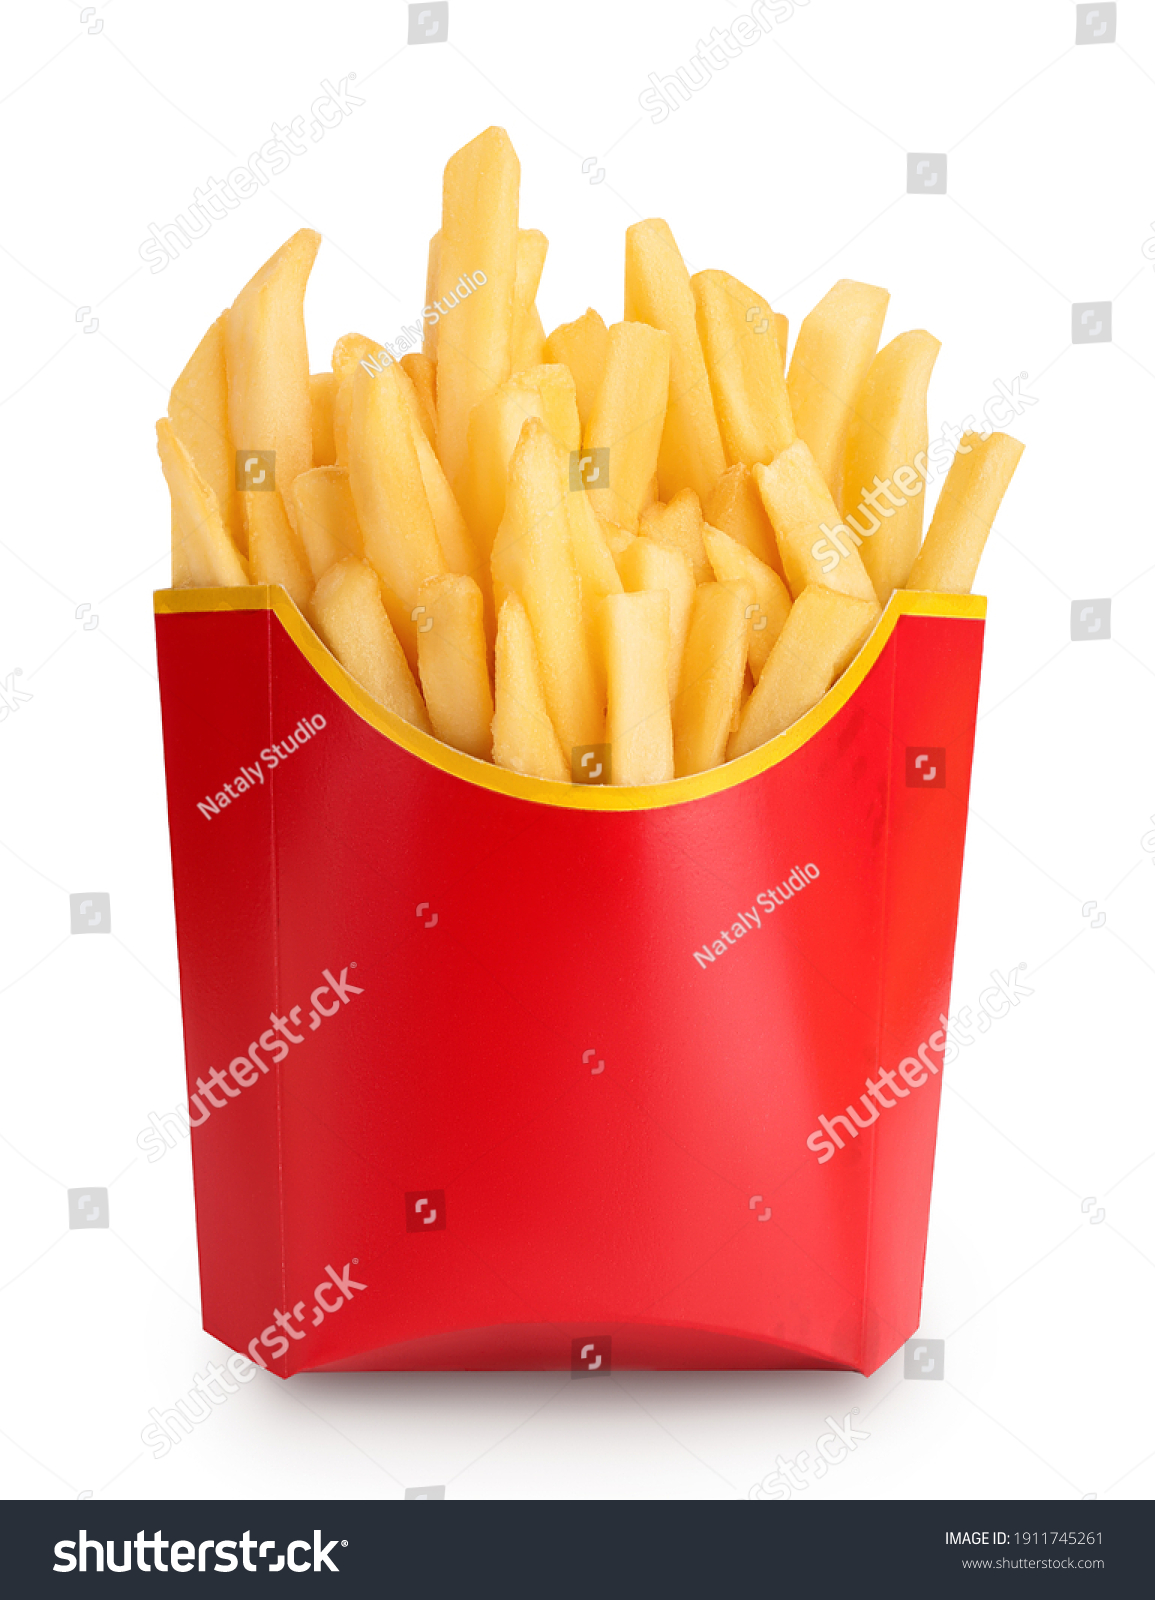 French fries or fried potatoes in a red carton box isolated on white background with clipping path and full depth of field #1911745261